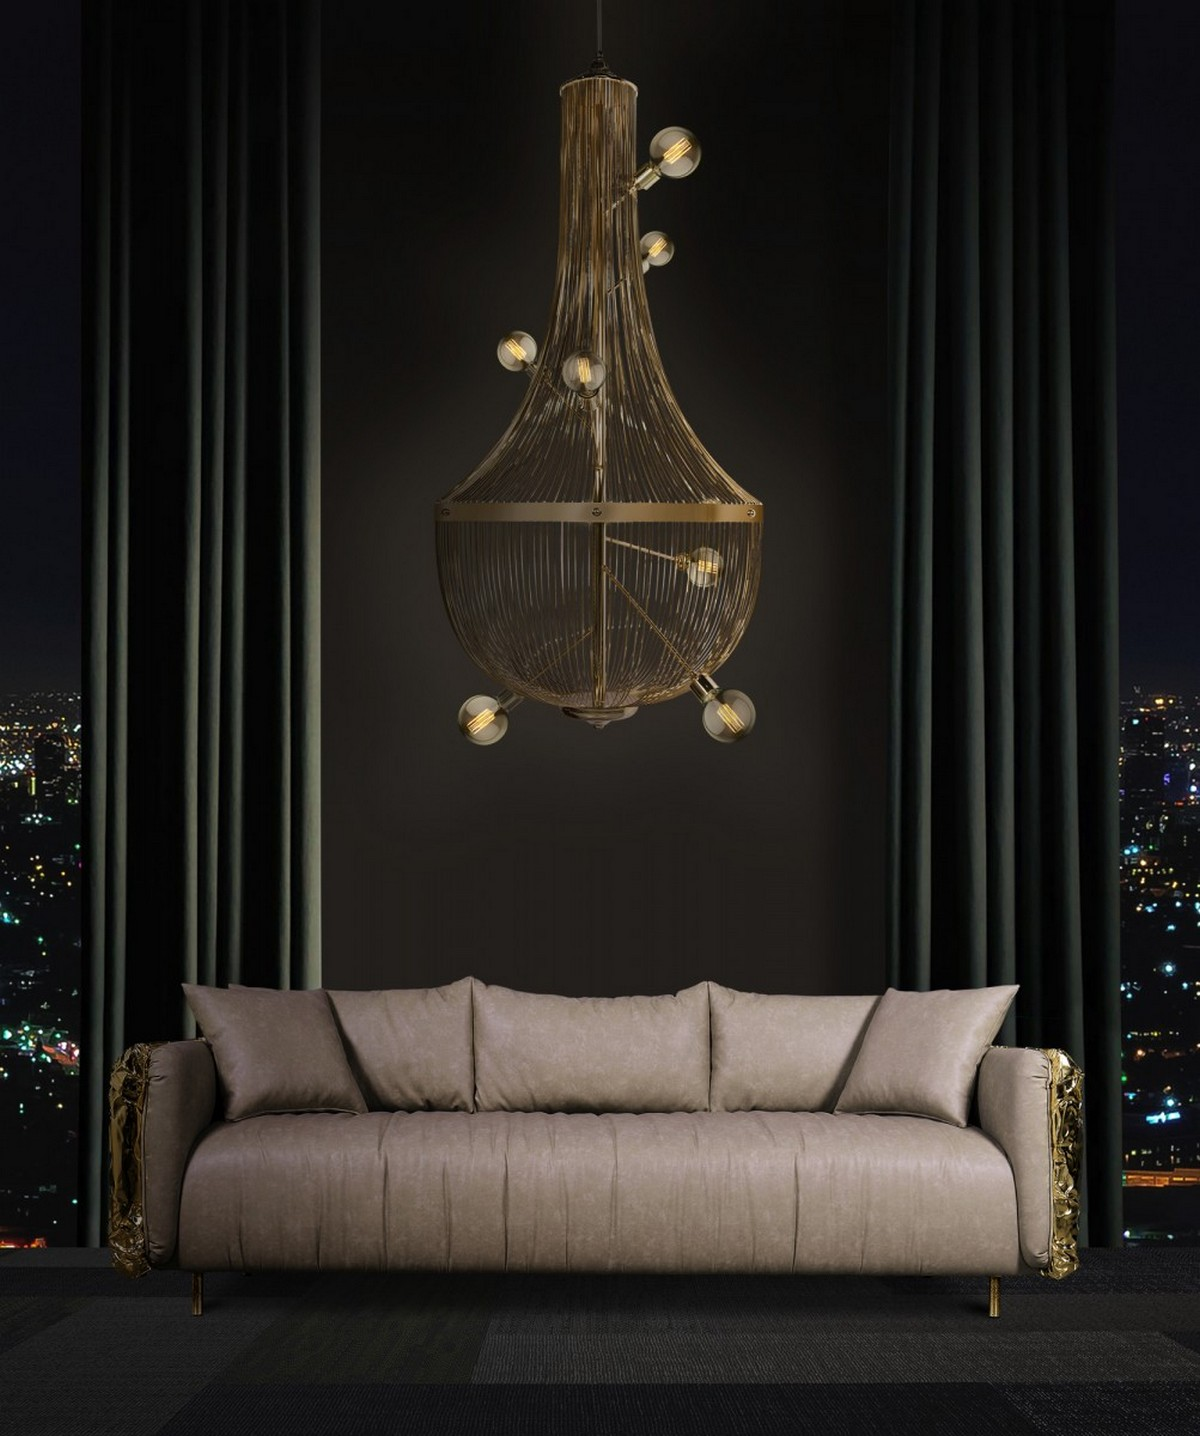 Covet House: Contemporary Lighting Designs at MO19 mo19 Covet House: Contemporary Lighting Designs at MO19 lchandelier